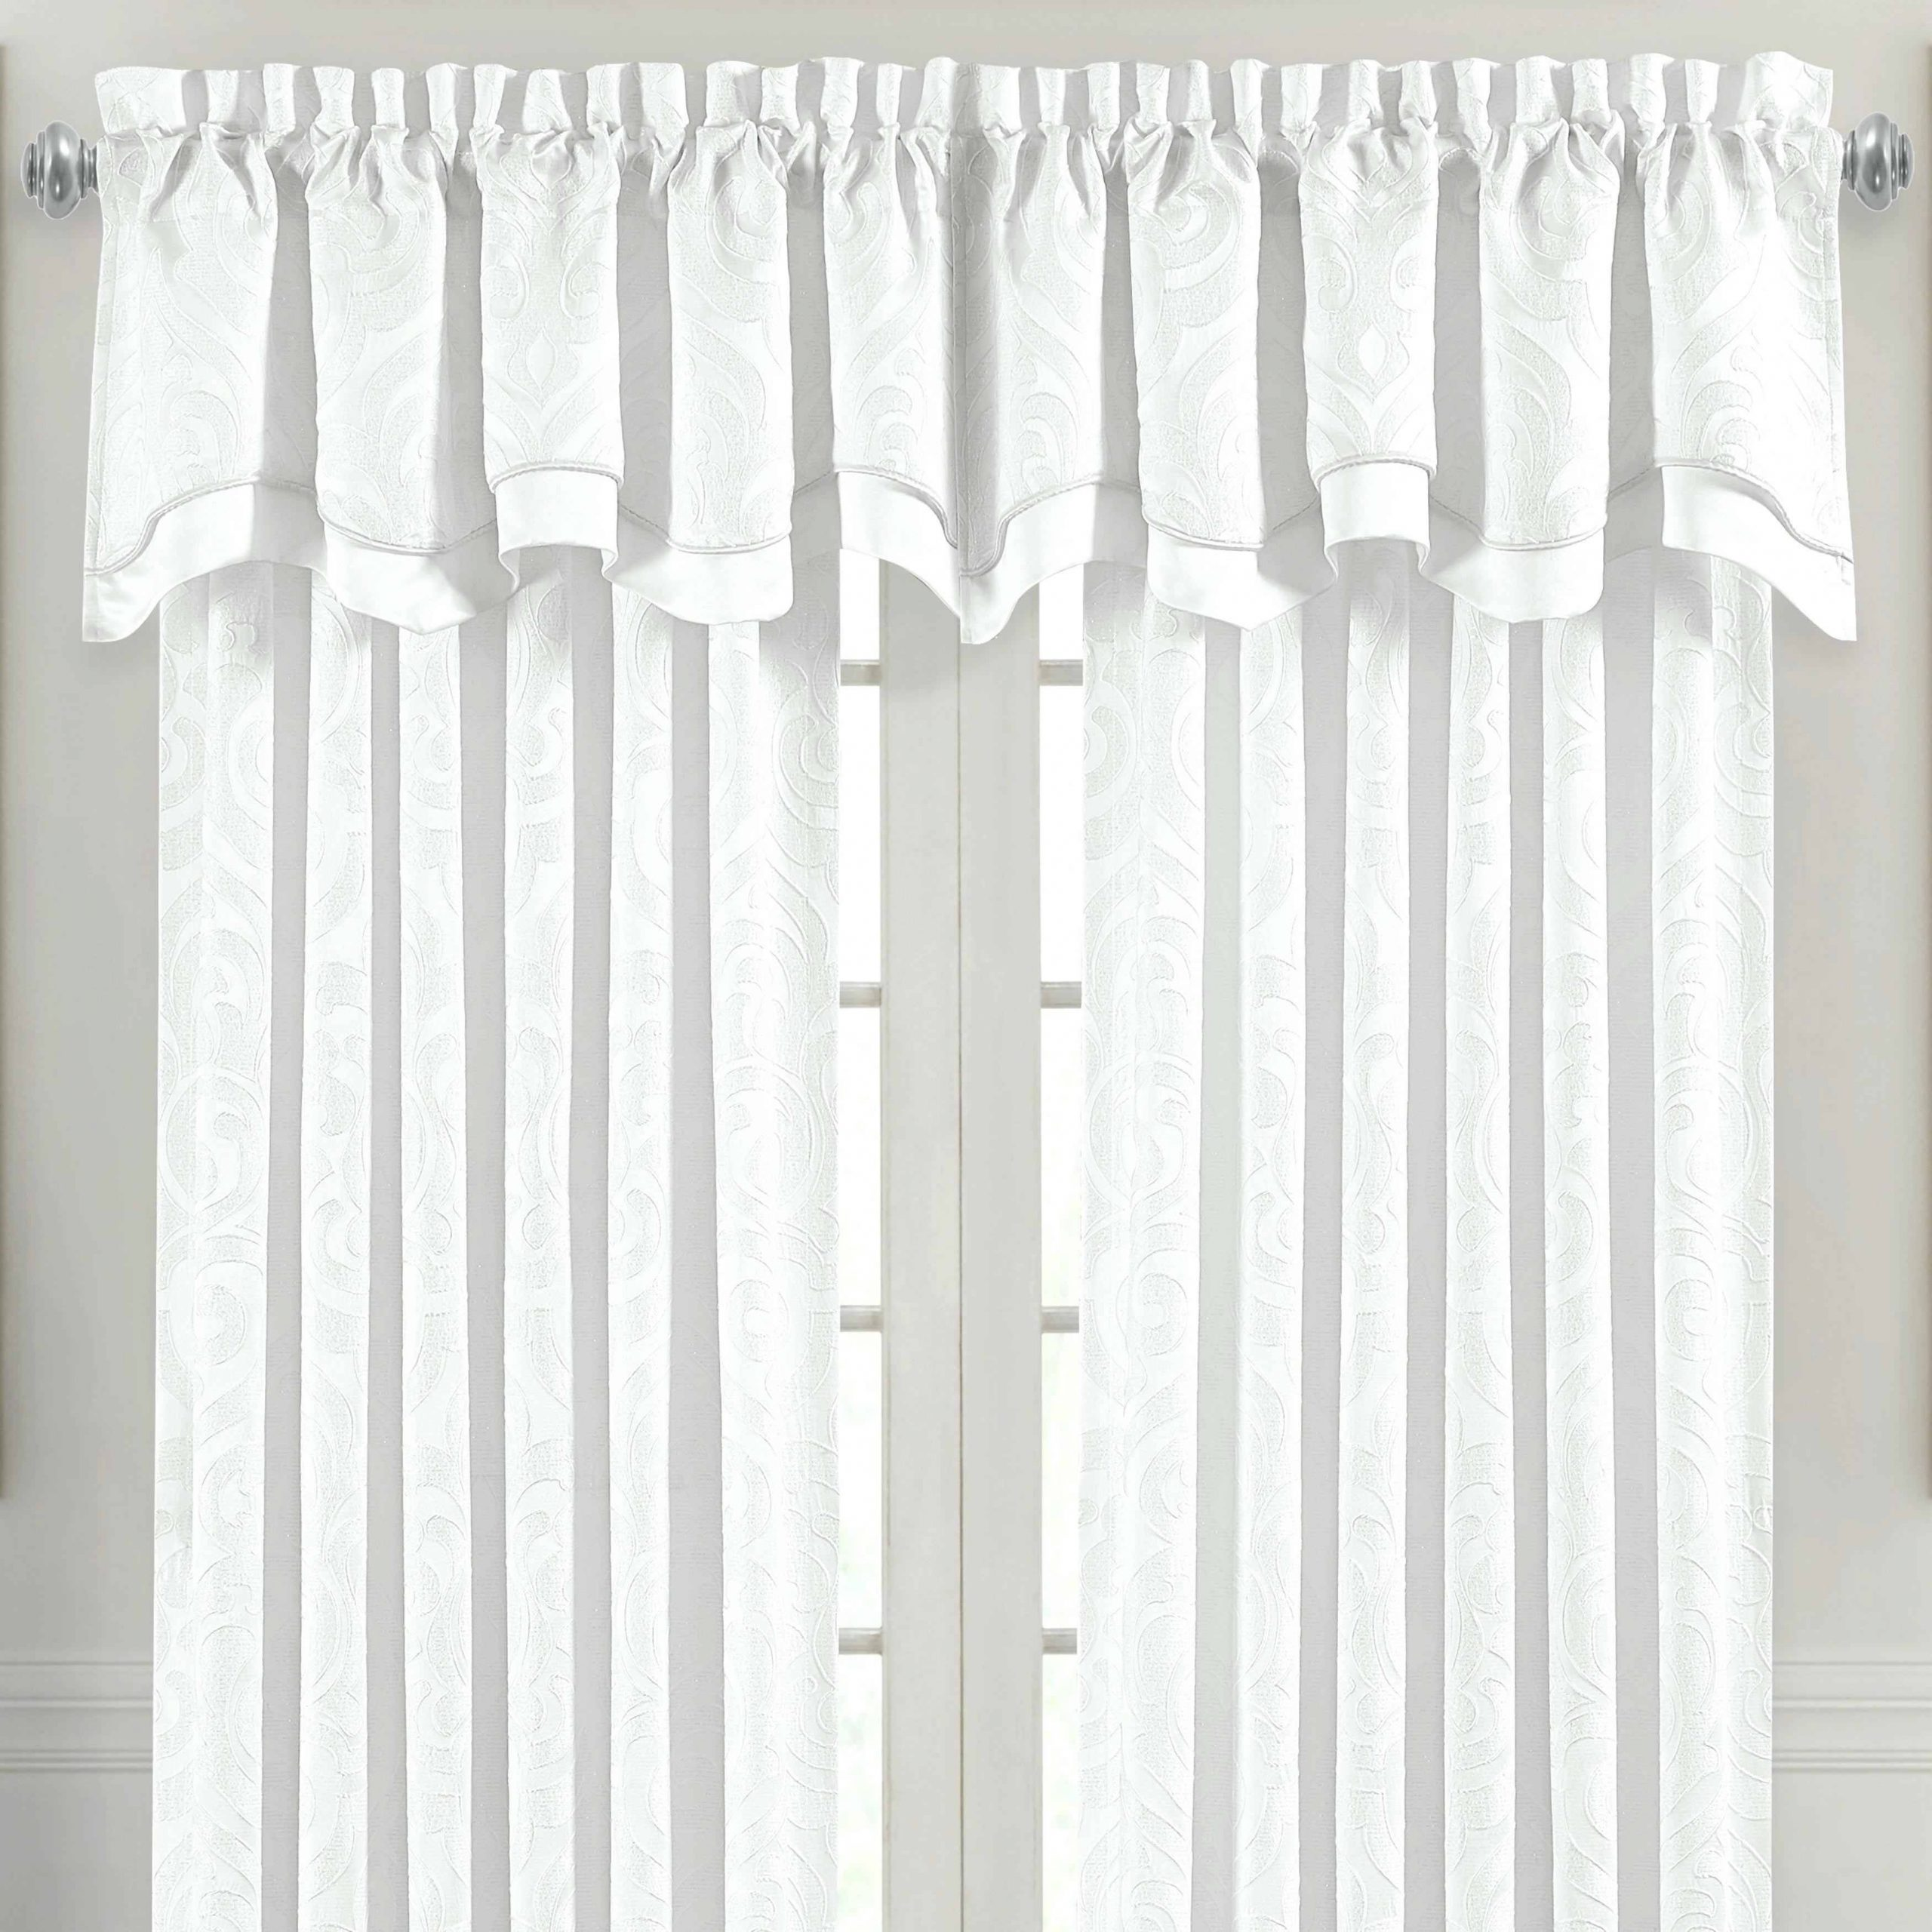 Excellent Kitchen Valance Red Curtains Make Burlap For Intended For Modern Subtle Texture Solid White Kitchen Curtain Parts With Grommets Tier And Valance Options (View 11 of 20)